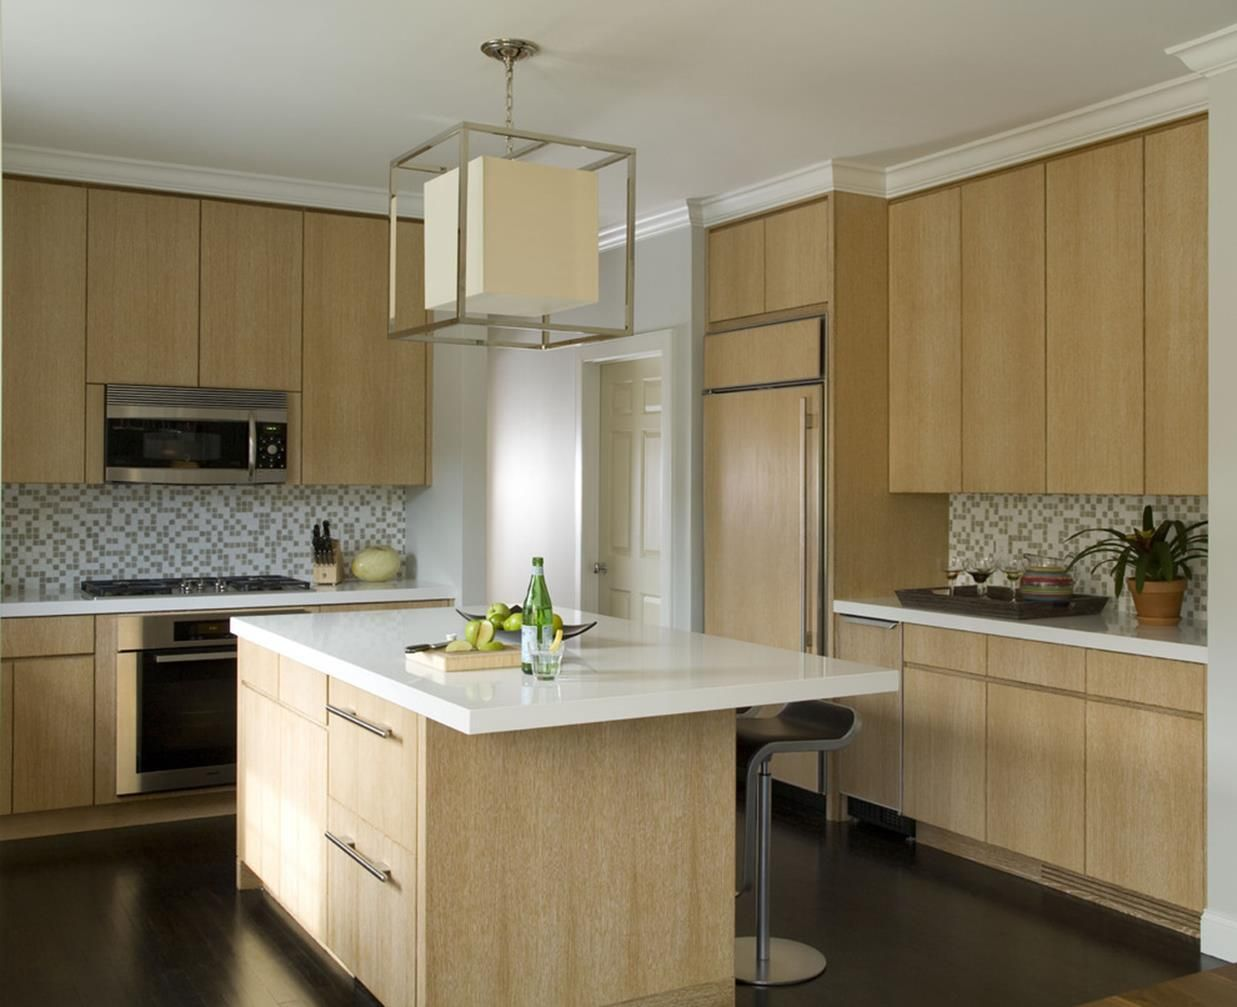 Account Suspended Kitchen Cabinets Light Wood Kitchen Cabinet Design Contemporary Oak Kitchen